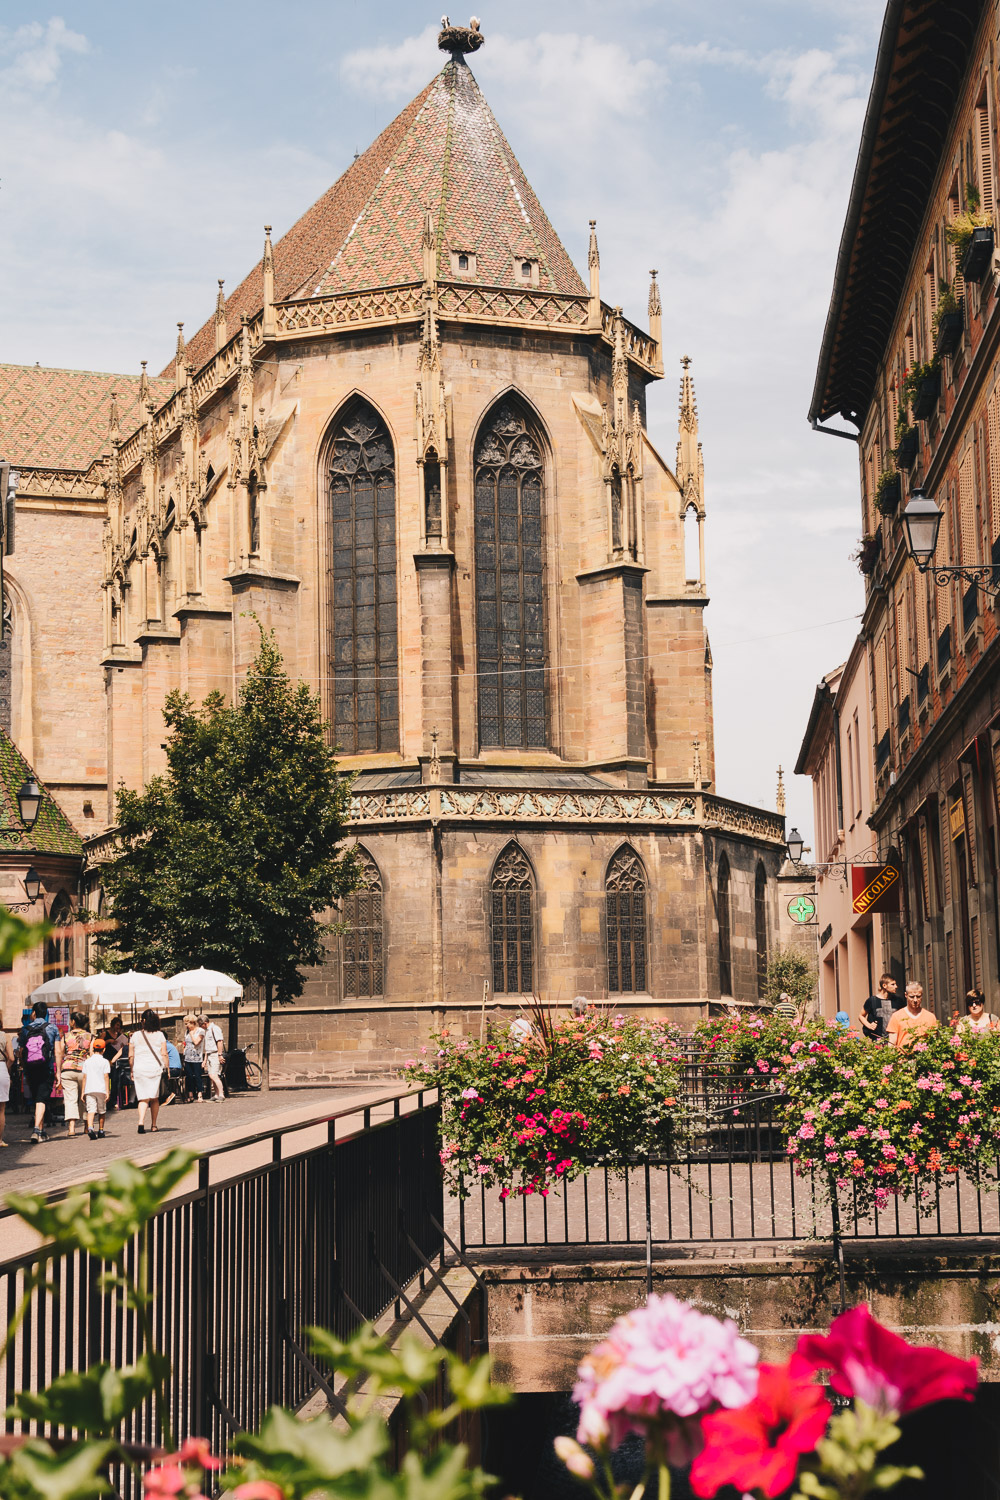 The Saint Martin Church in Colmar France